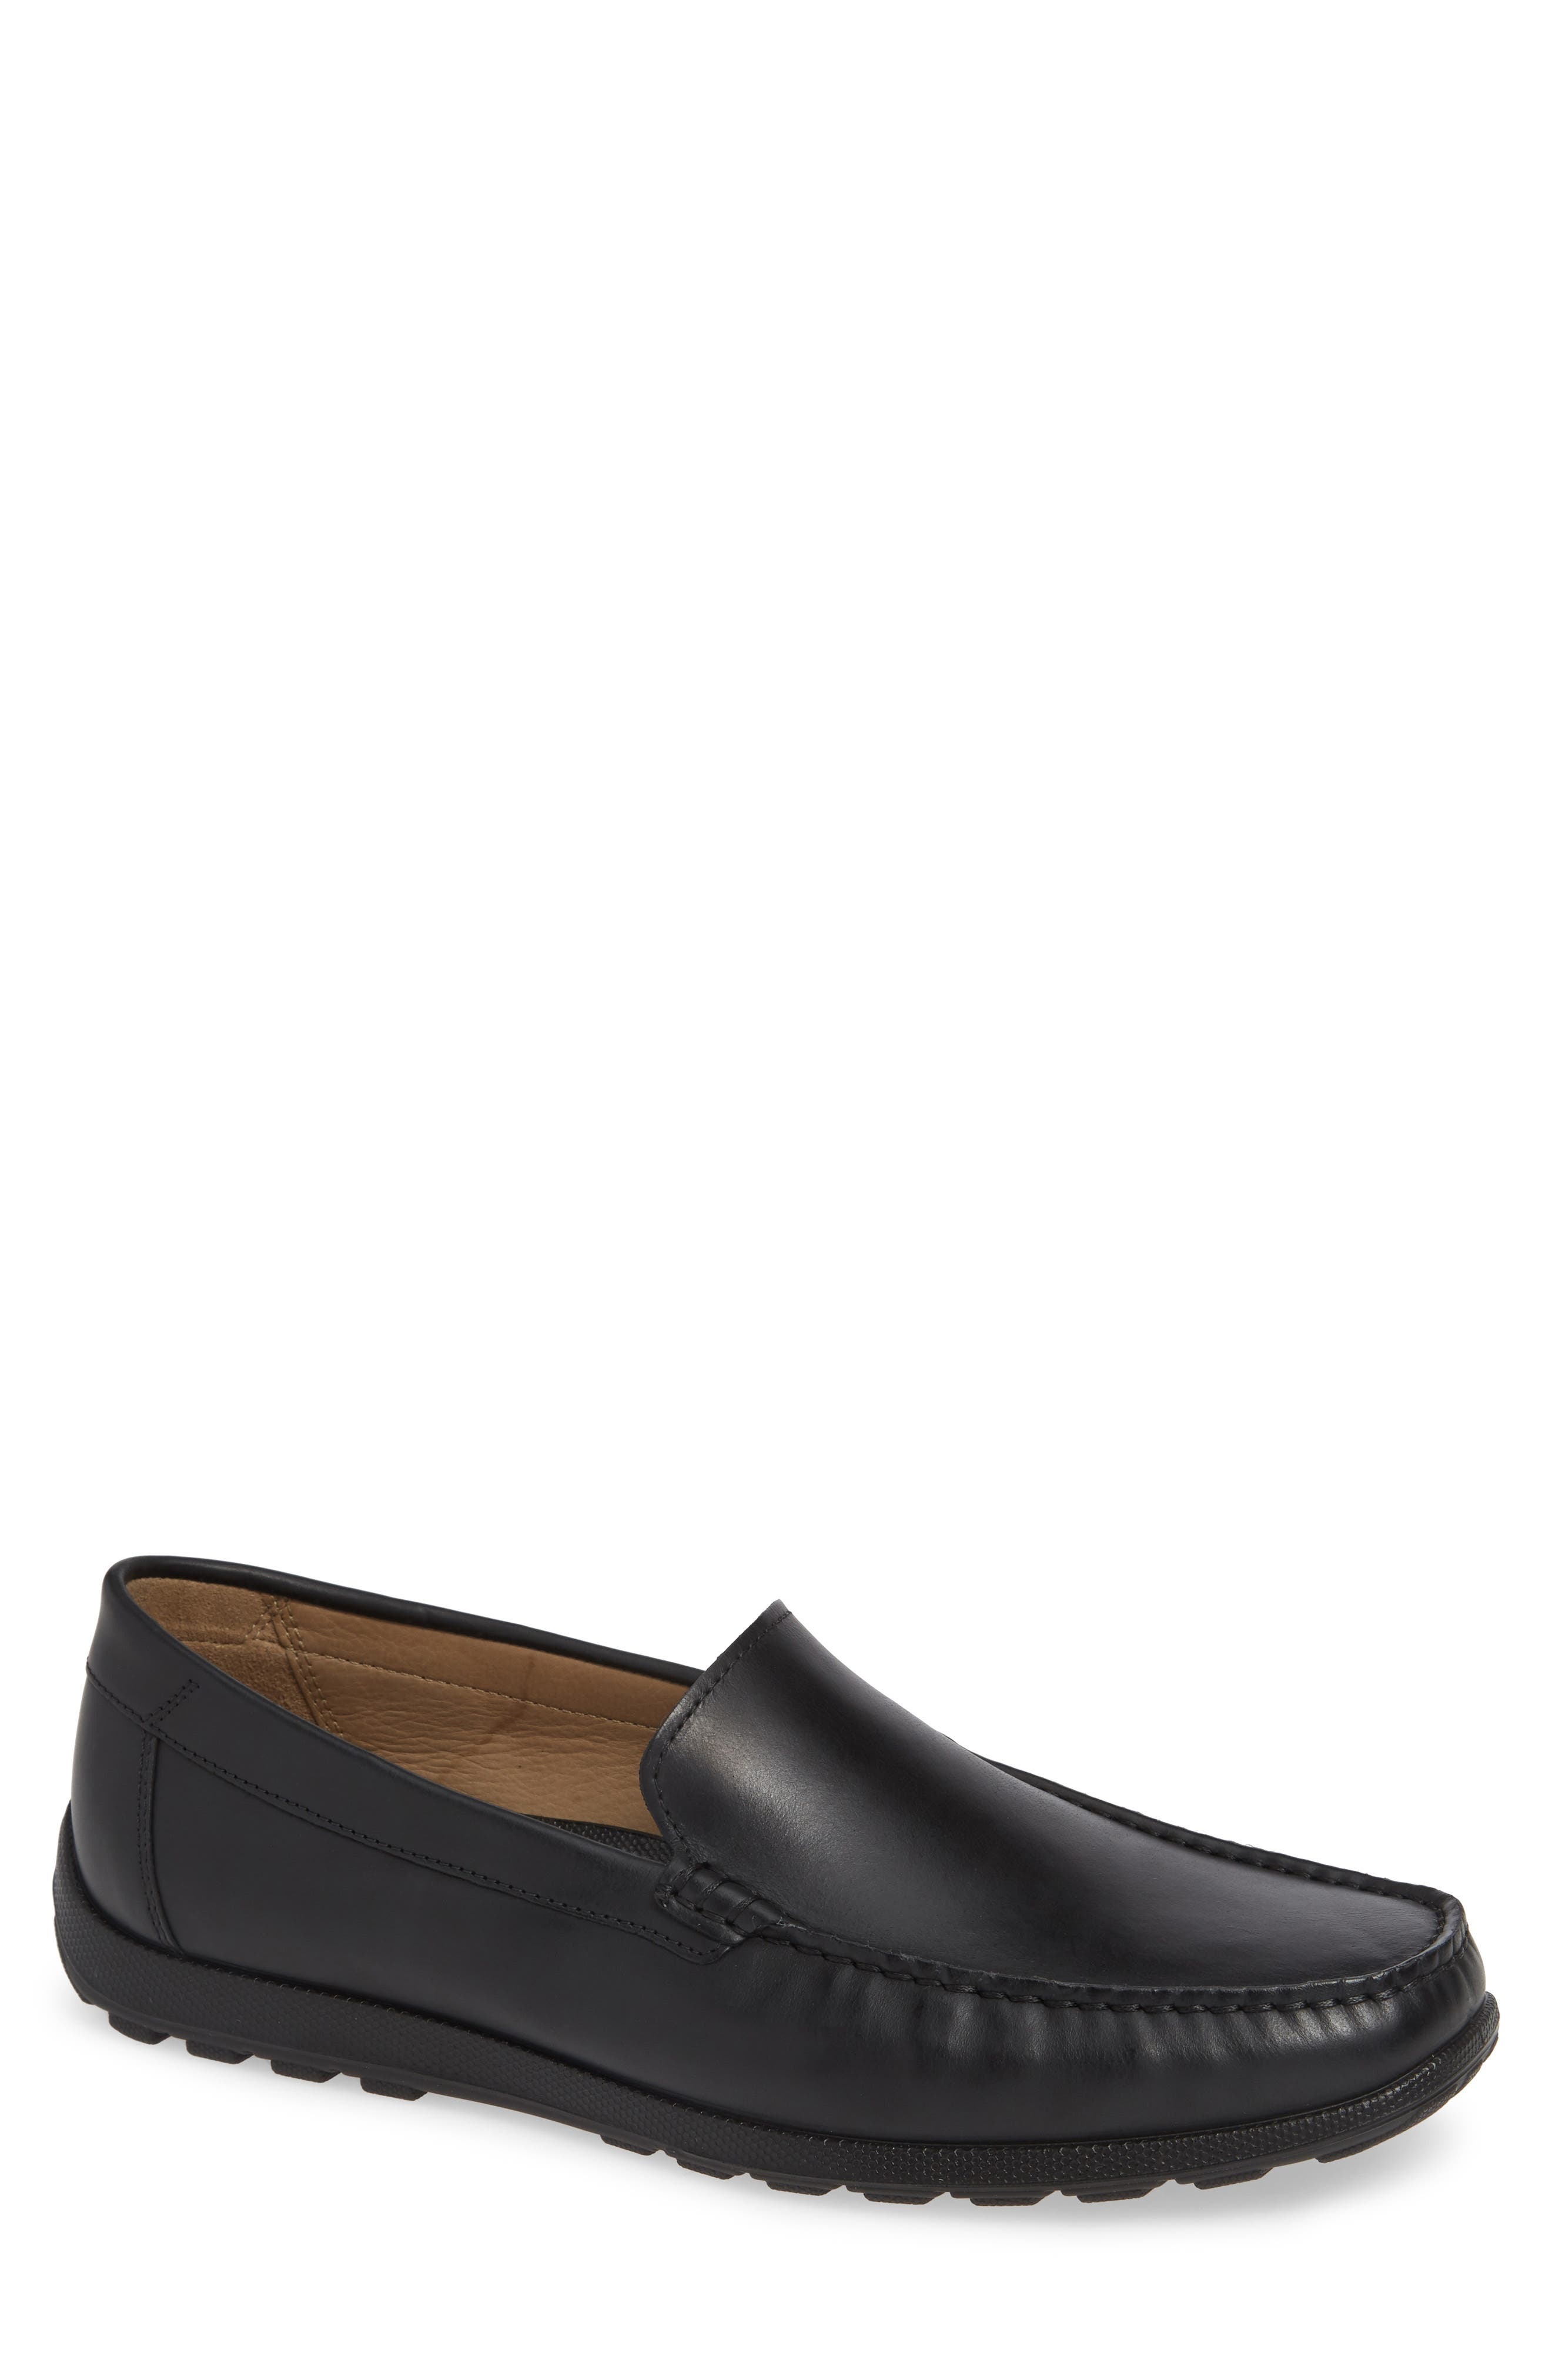 Dip Moc Toe Driving Loafer,                             Main thumbnail 1, color,                             BLACK LEATHER